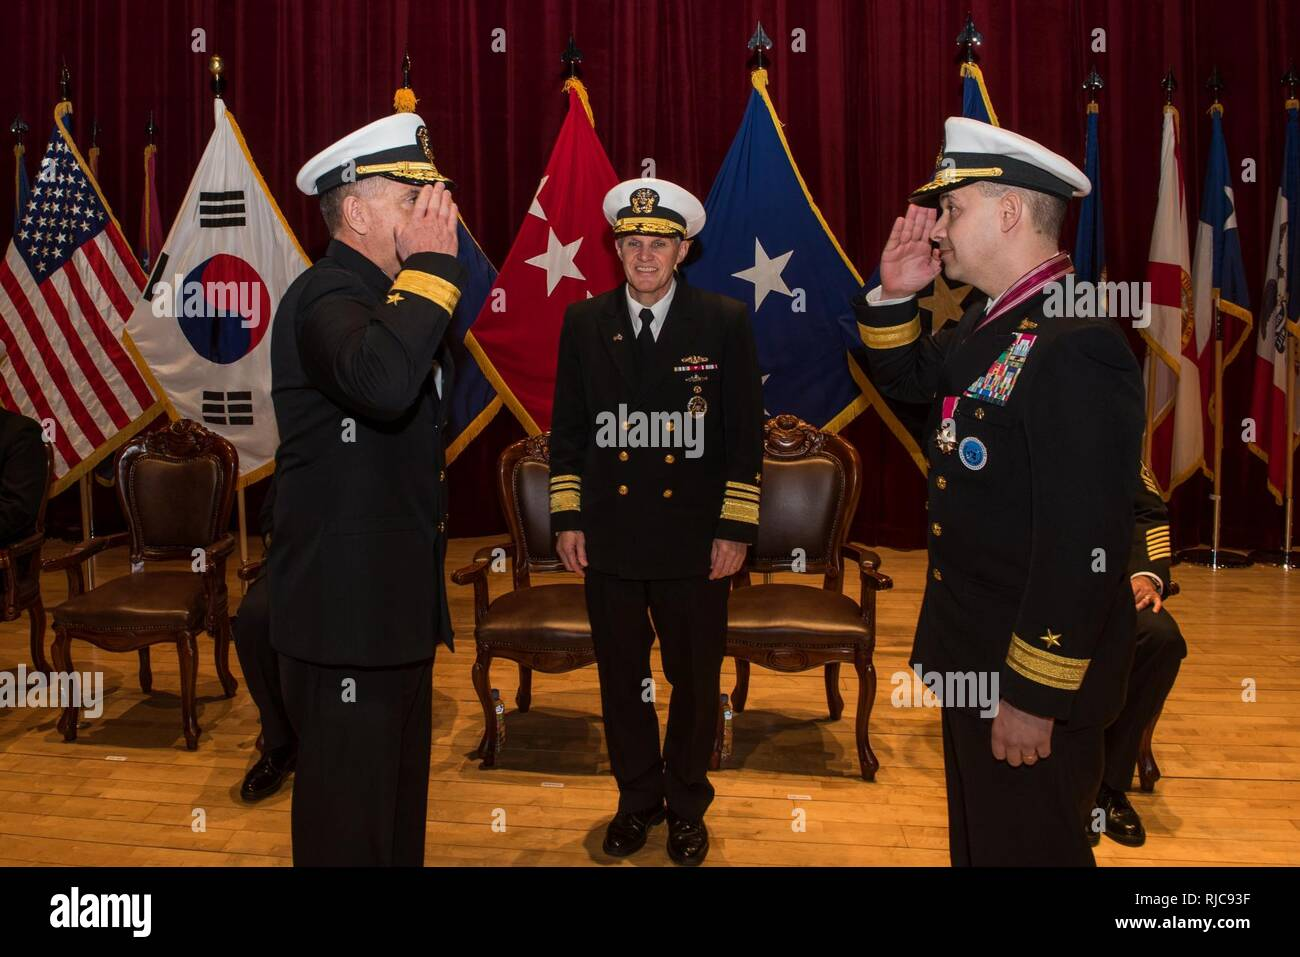 Busan, Republic of Korea (Jan 11, 2018) - Rear Adm. Michael E. Boyle renders a salute to Rear Adm. Brad Cooper in front of Vice Adm. Phil J. Sawyer, commander, U.S. Seventh Fleet, assuming command of U.S. Naval Forces Korea (CNFK). During the ceremony Rear Adm. Michael E. Boyle relieved Rear Adm. Brad Cooper, becoming CNFK's 36th commander. Stock Photo